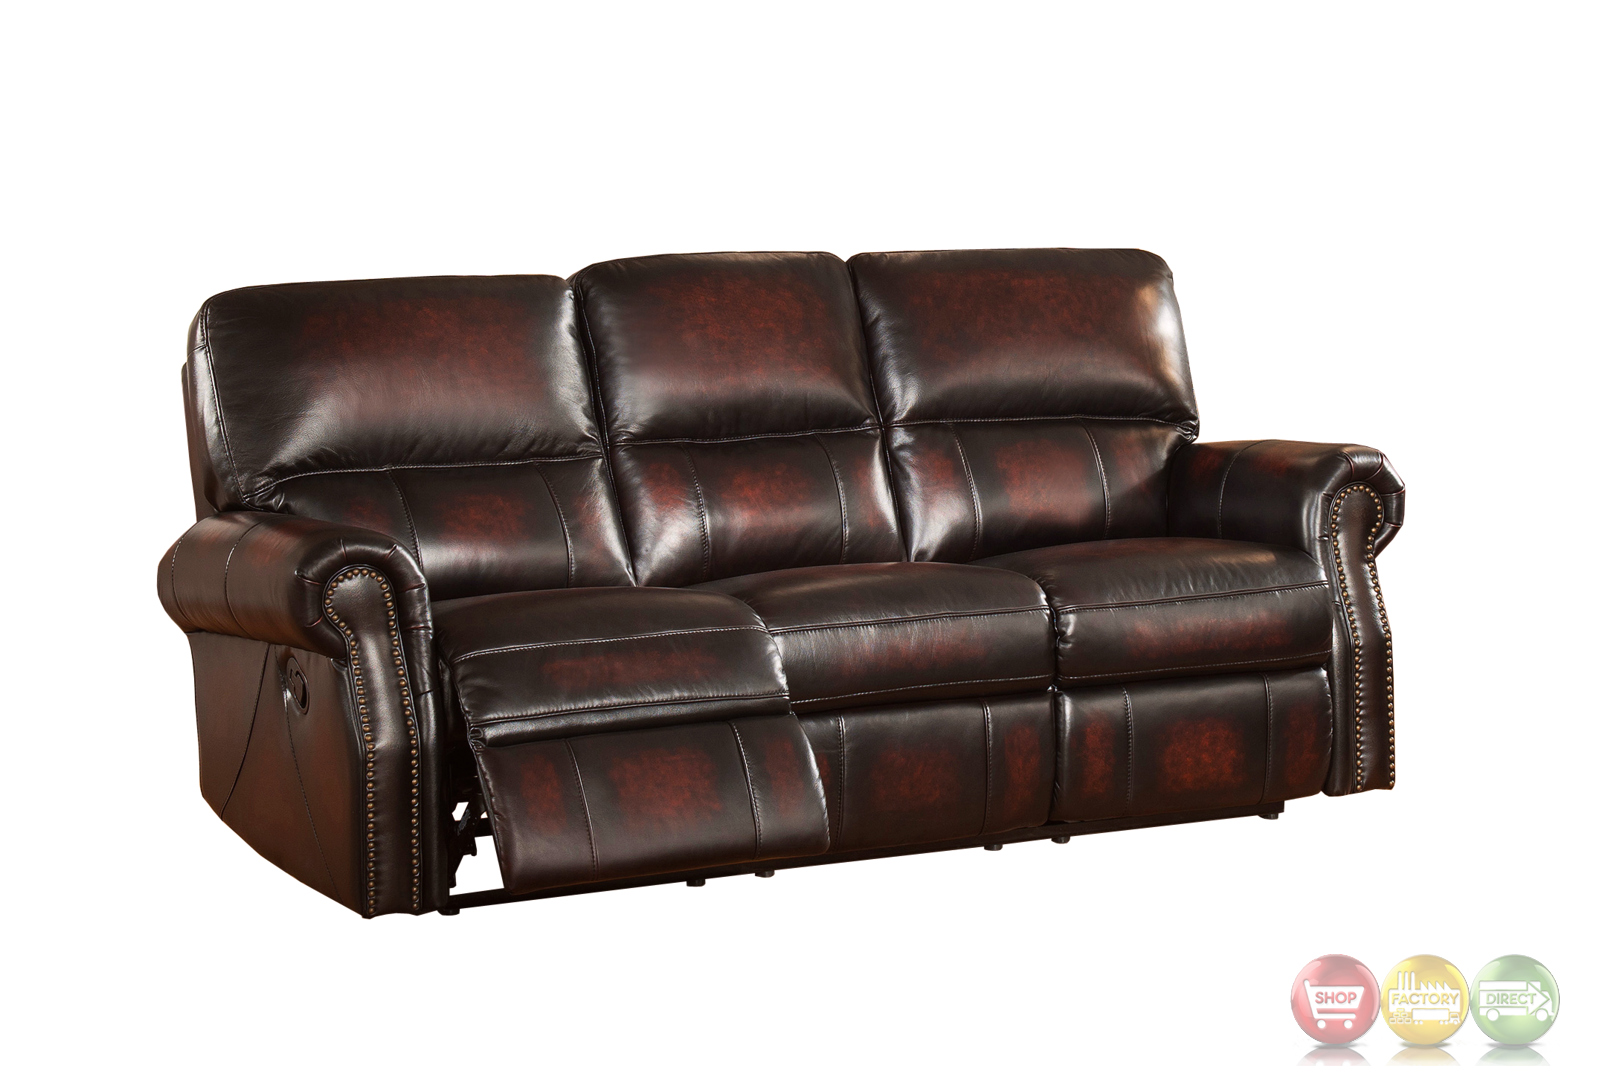 Brooklyn burgundy lay flat reclining 3pc sofa set in top grain leather Burgundy leather loveseat